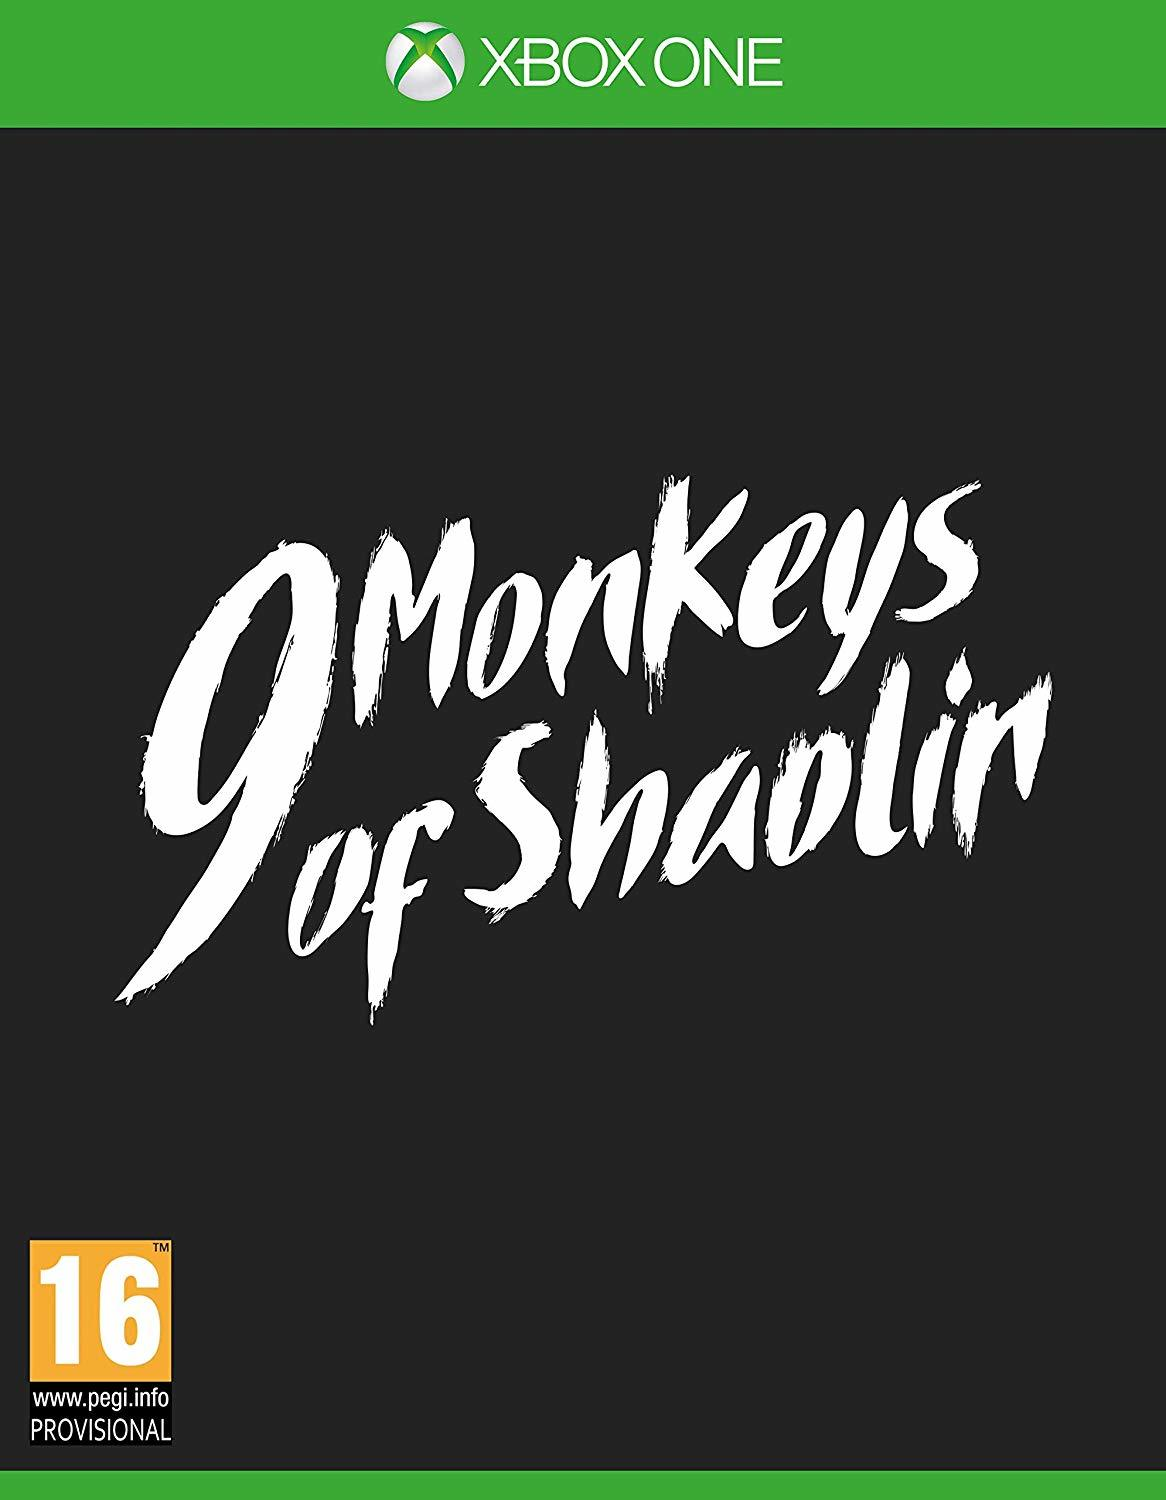 9 Monkeys of Shaolin - Xbox One